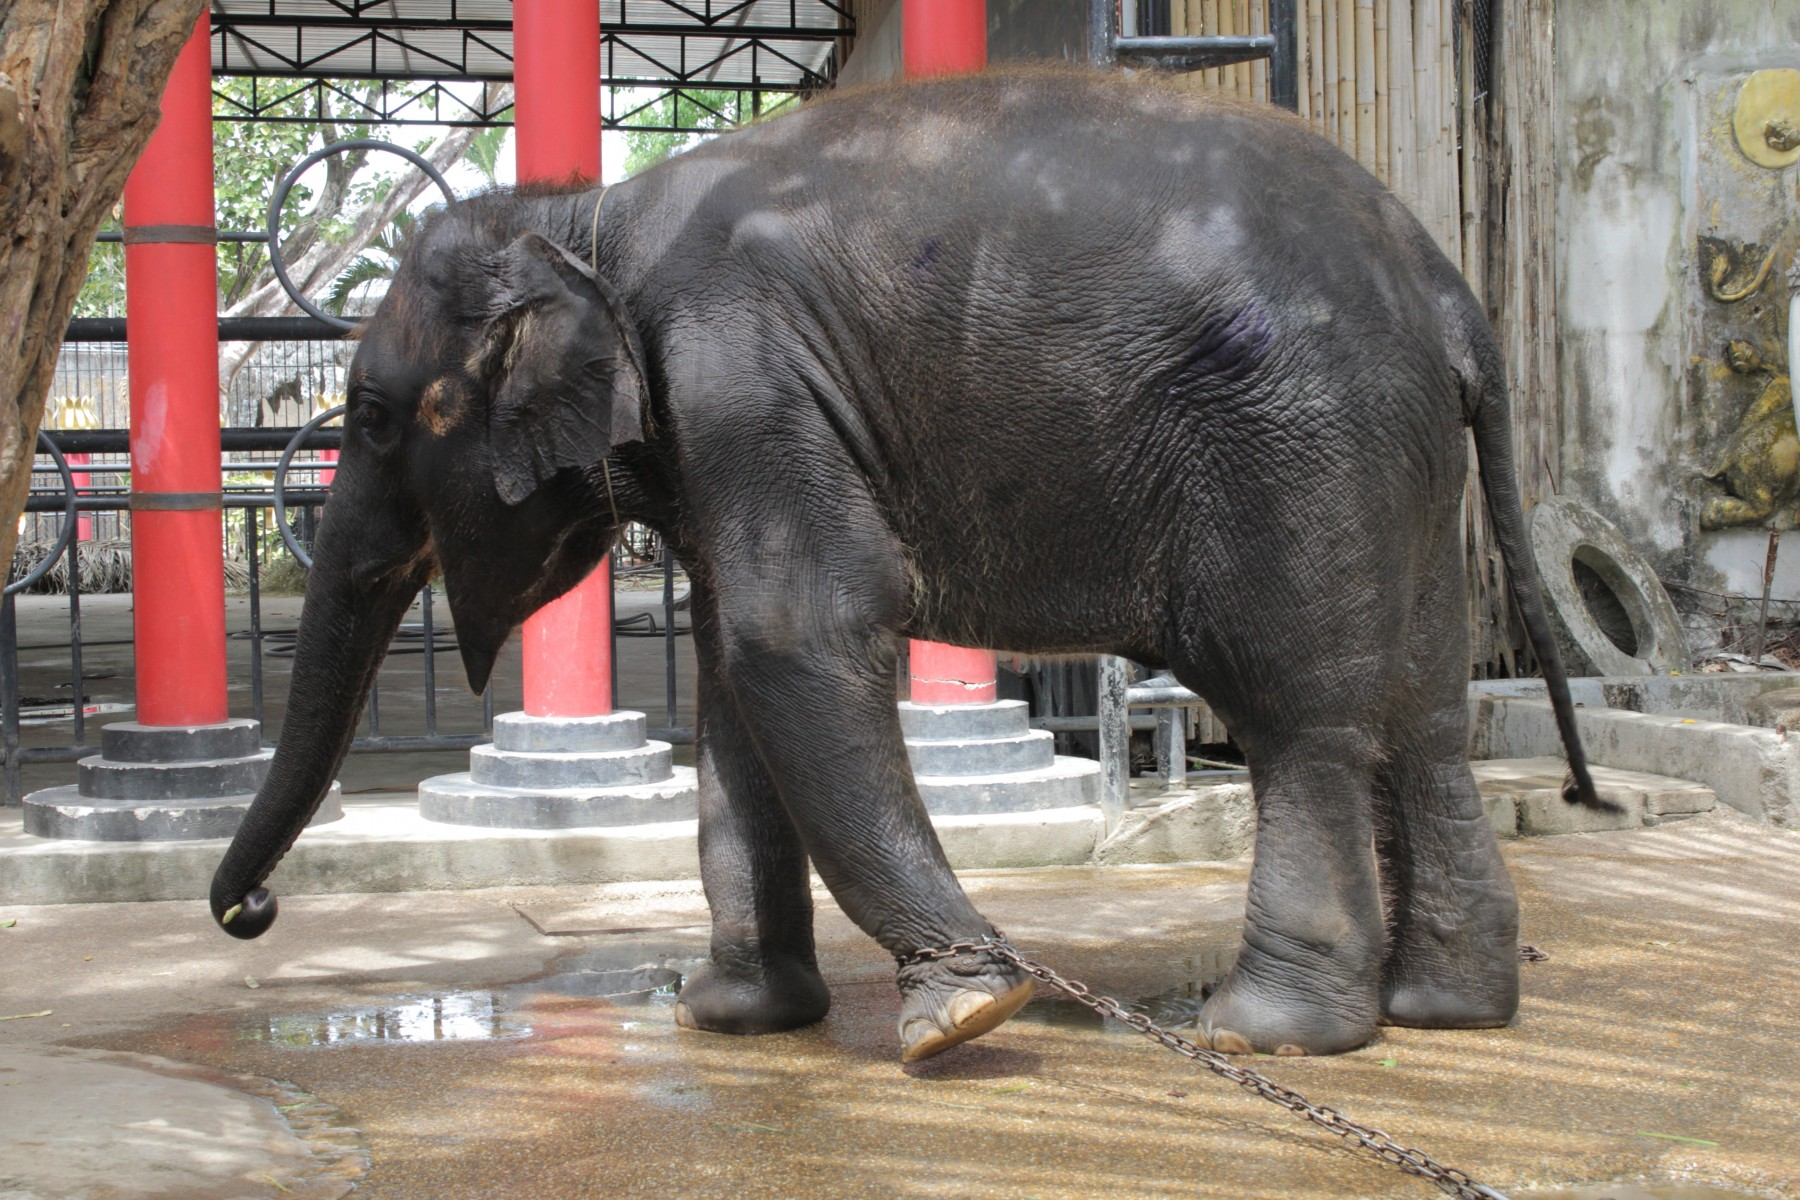 Pictured: An elephant kept in chains.